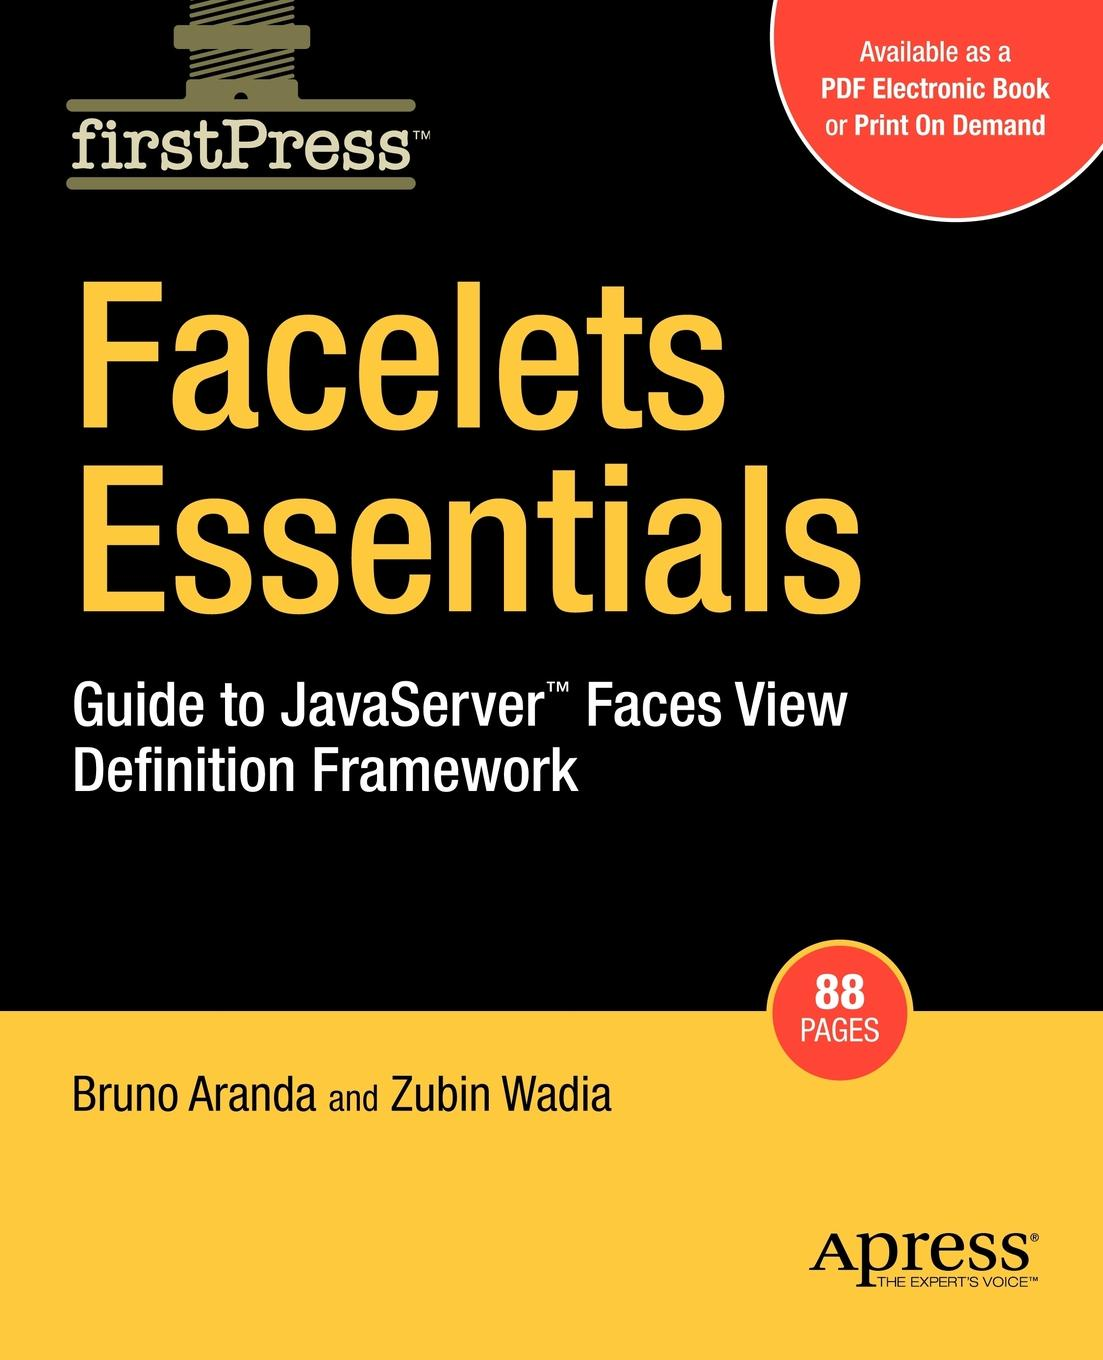 Bruno Aranda, Zubin Wadia Facelets Essentials. Guide to JavaServer Faces View Definition Framework картина definition